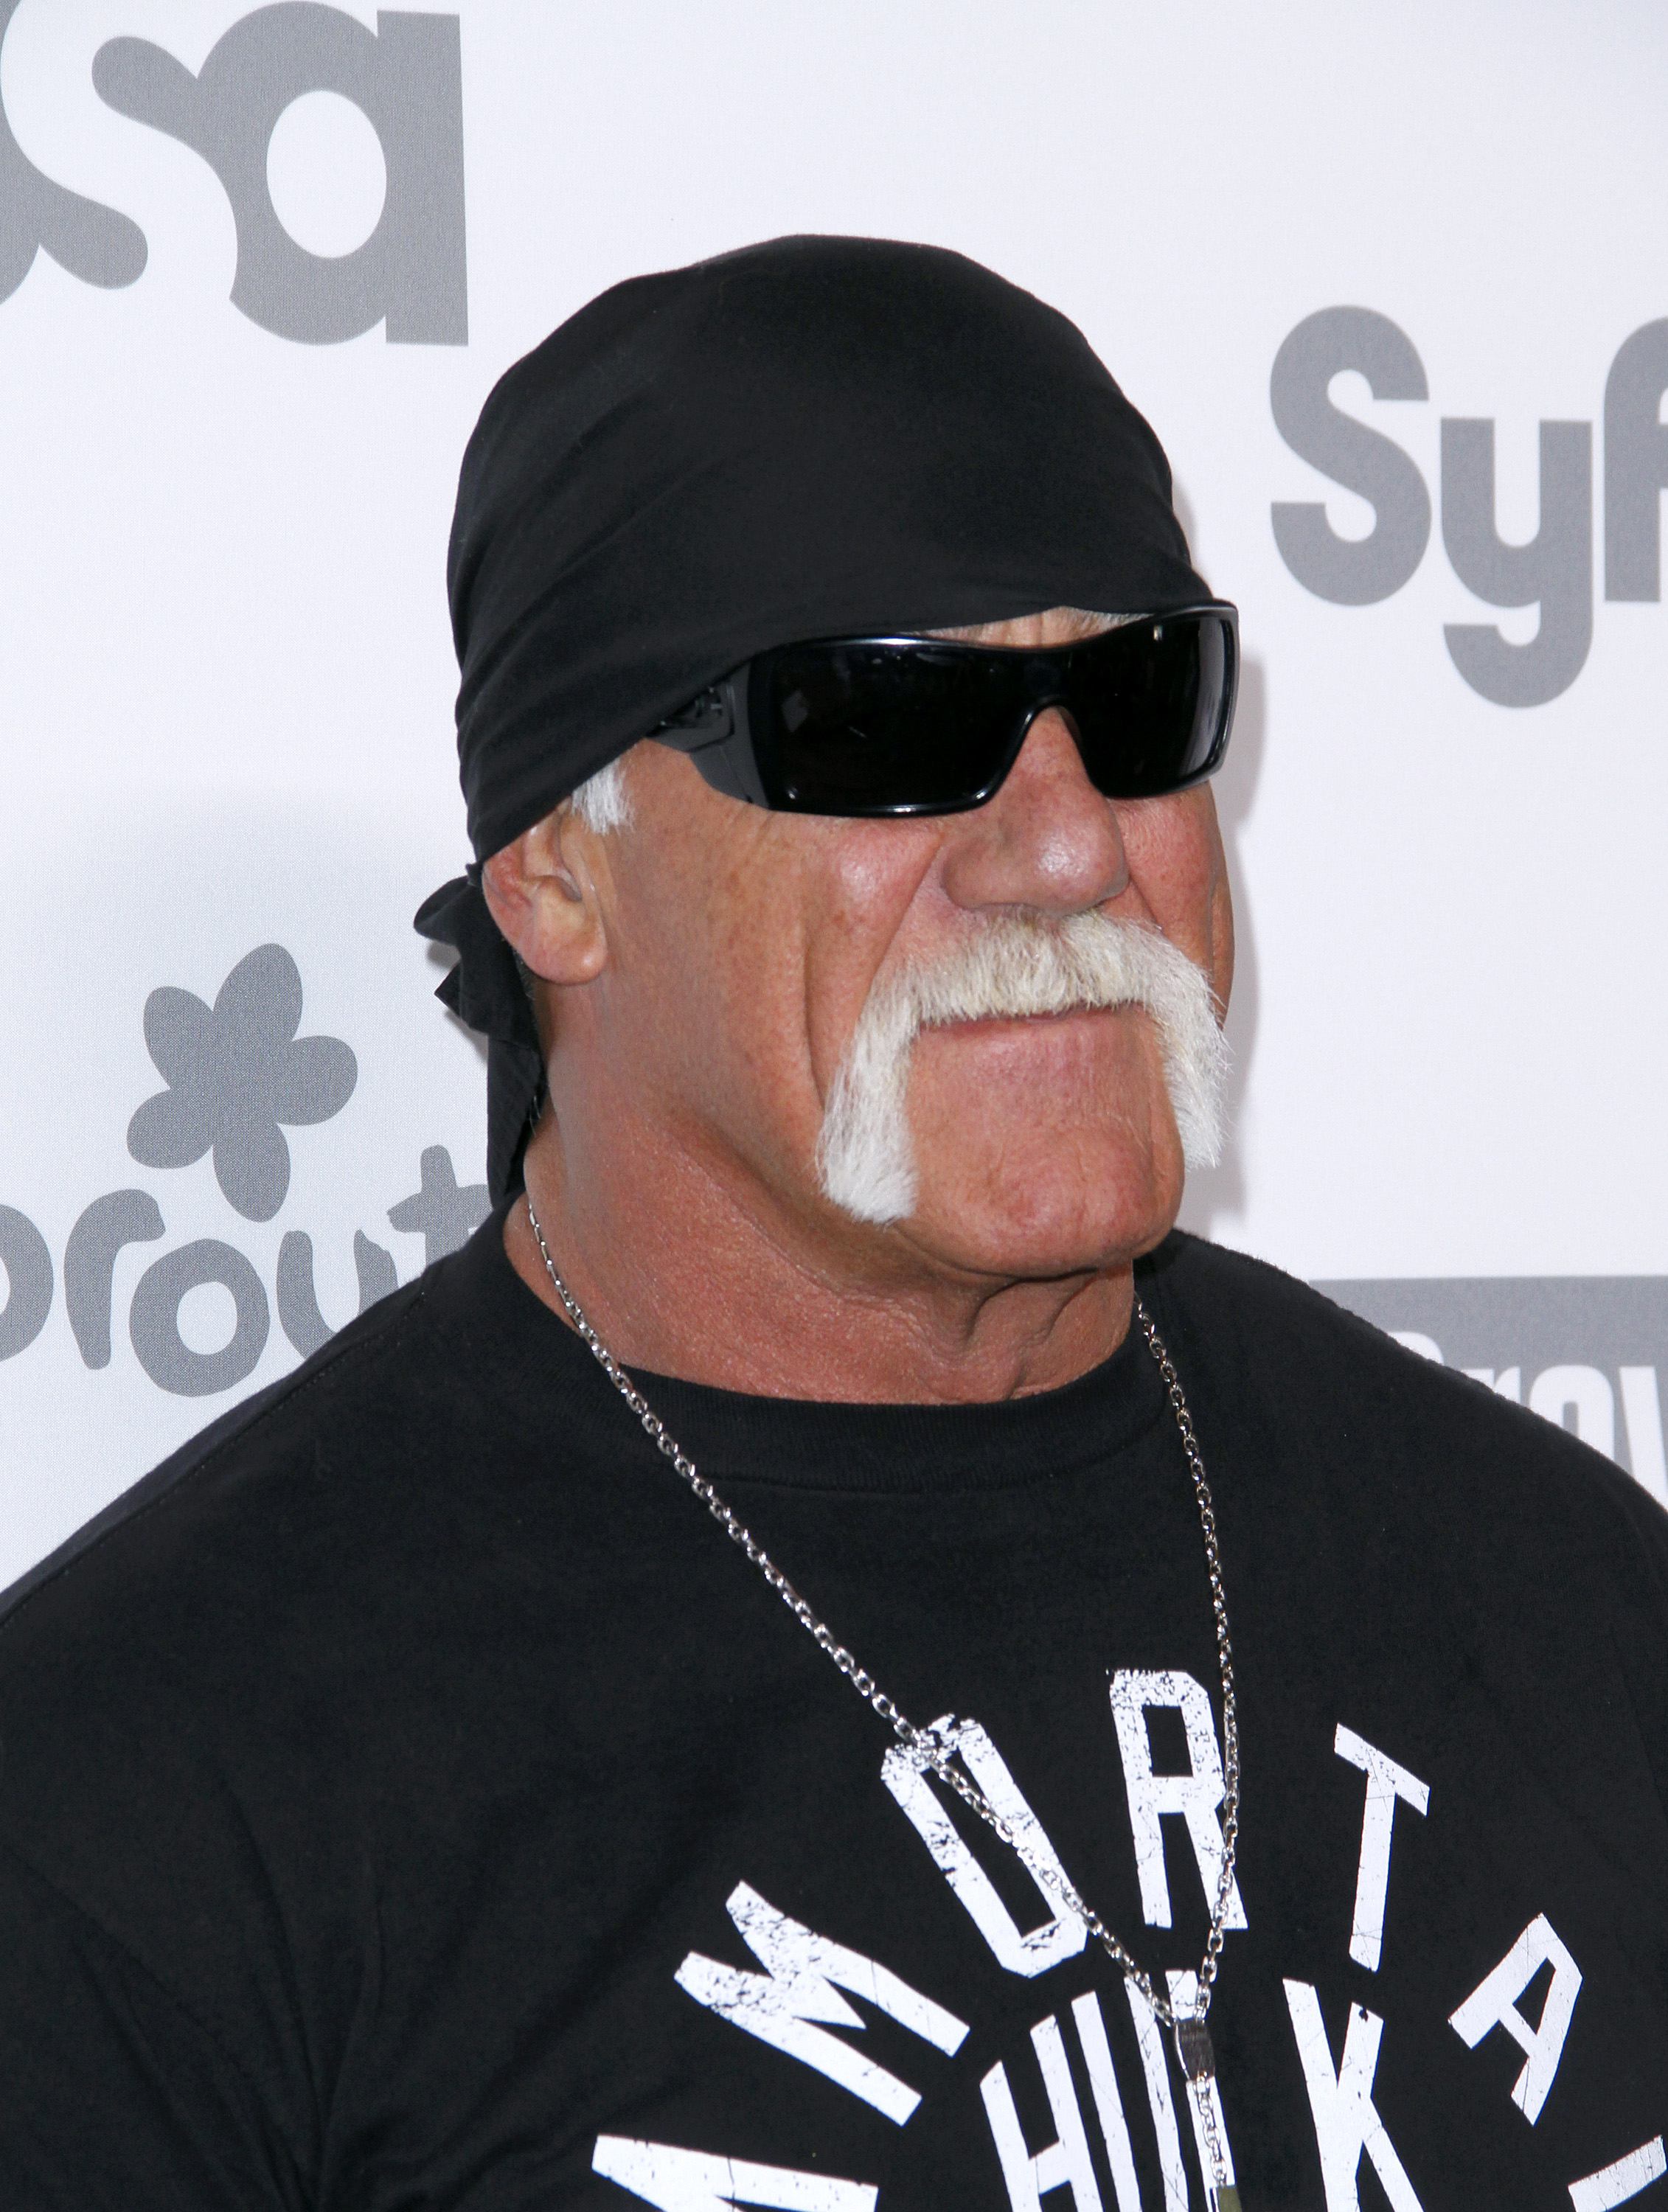 Hulk Hogan appears during the 2015 NBCUniversal Cable Entertainment Upfront at The Jacob K. Javits Convention Center on May 14, 2015 in New York City.